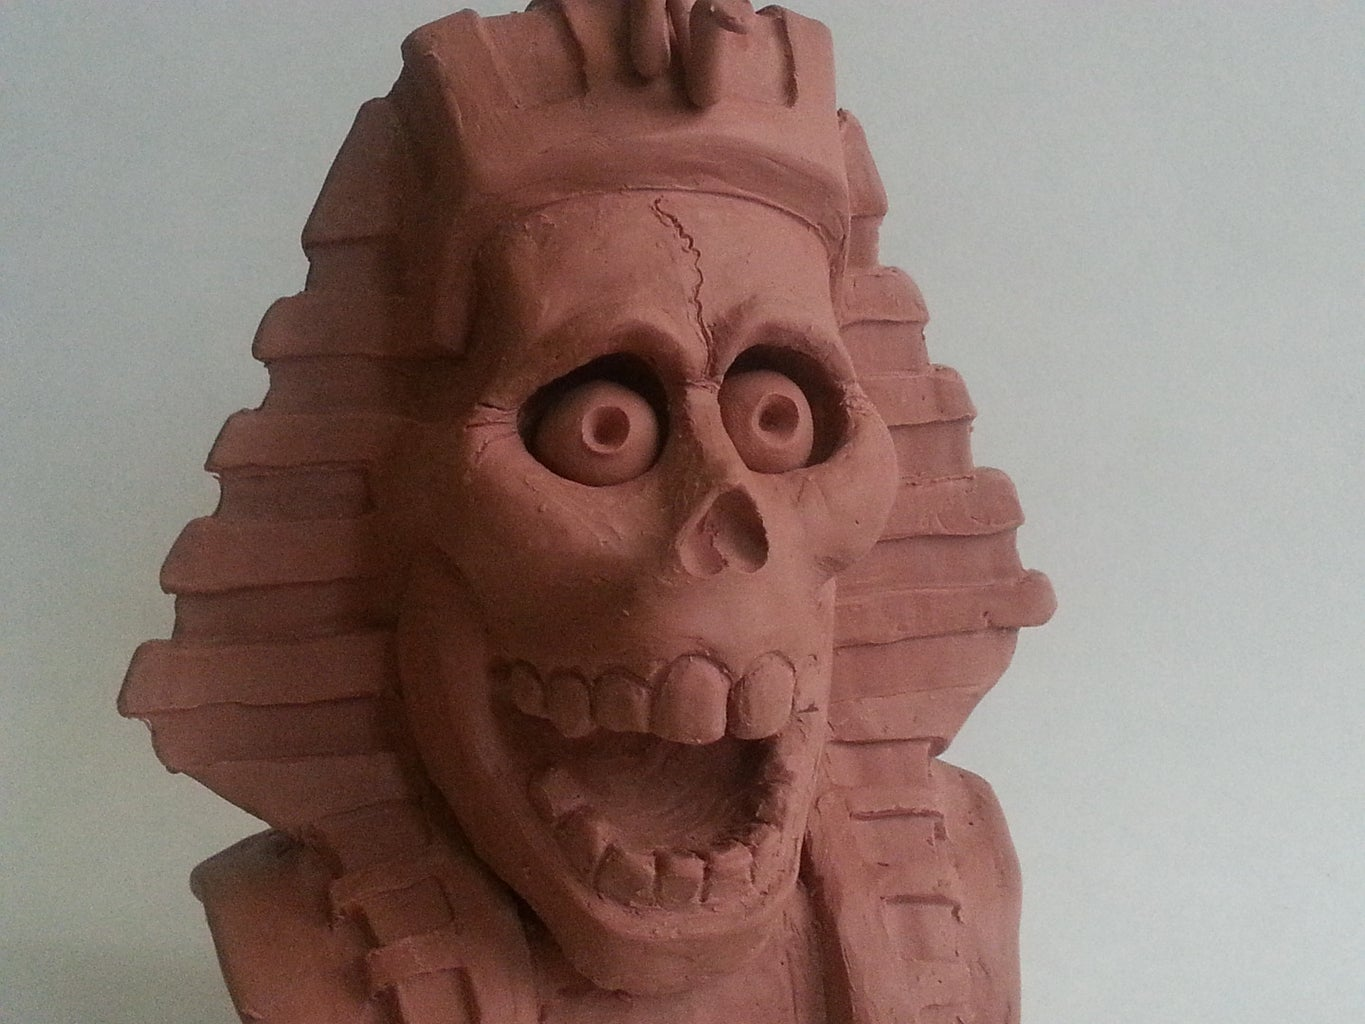 Completed Sculpture